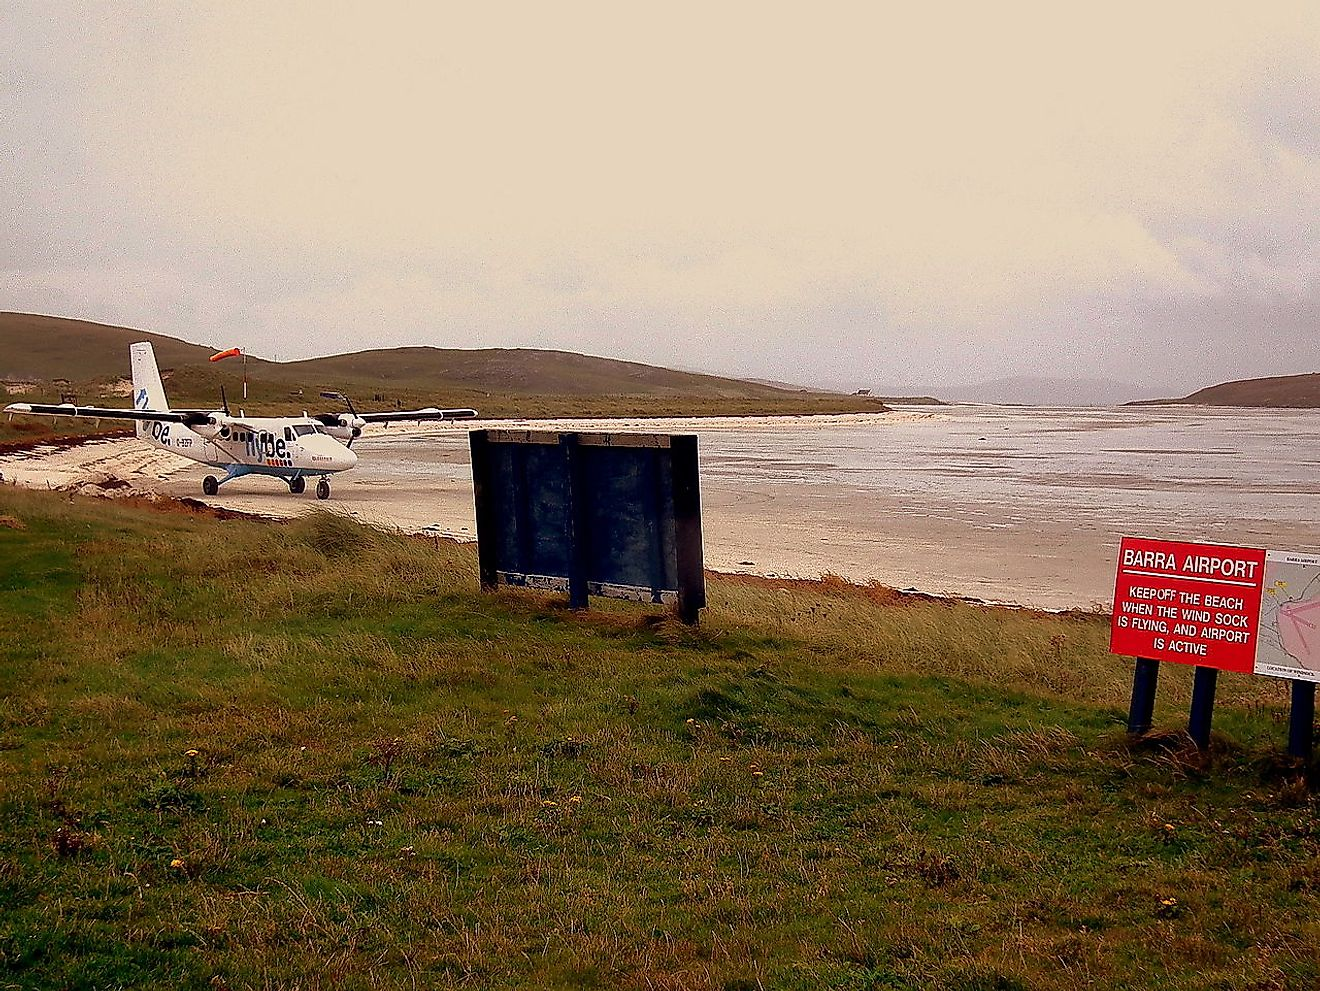 Barra Airport in Scotland has a runway on the beach.